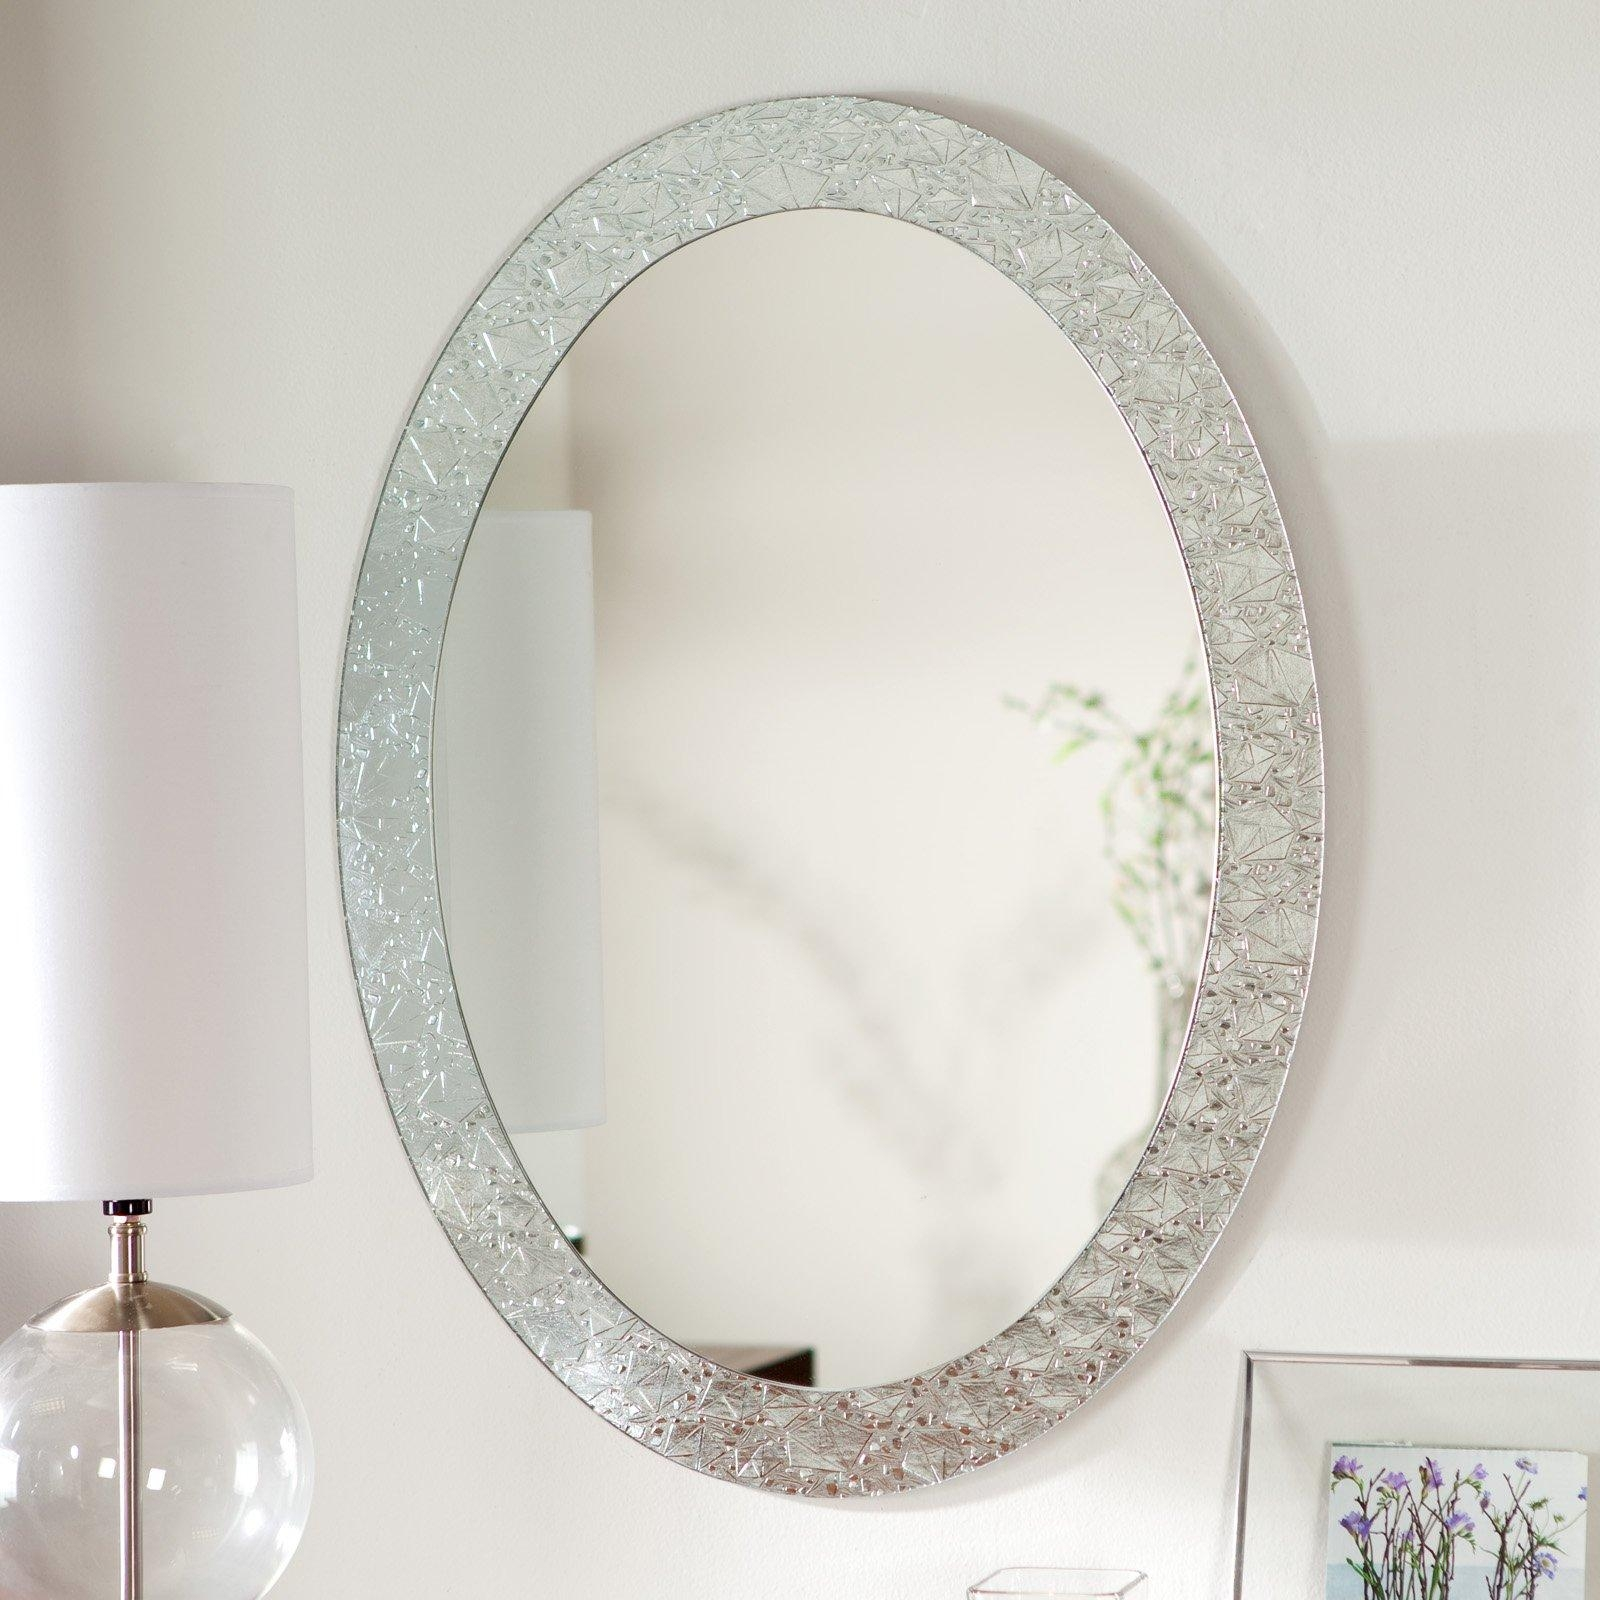 Bathroom: Brushed Nickel Wall Mirror | Oval Mirrors For Bathroom Throughout Silver Oval Wall Mirror (Image 3 of 20)